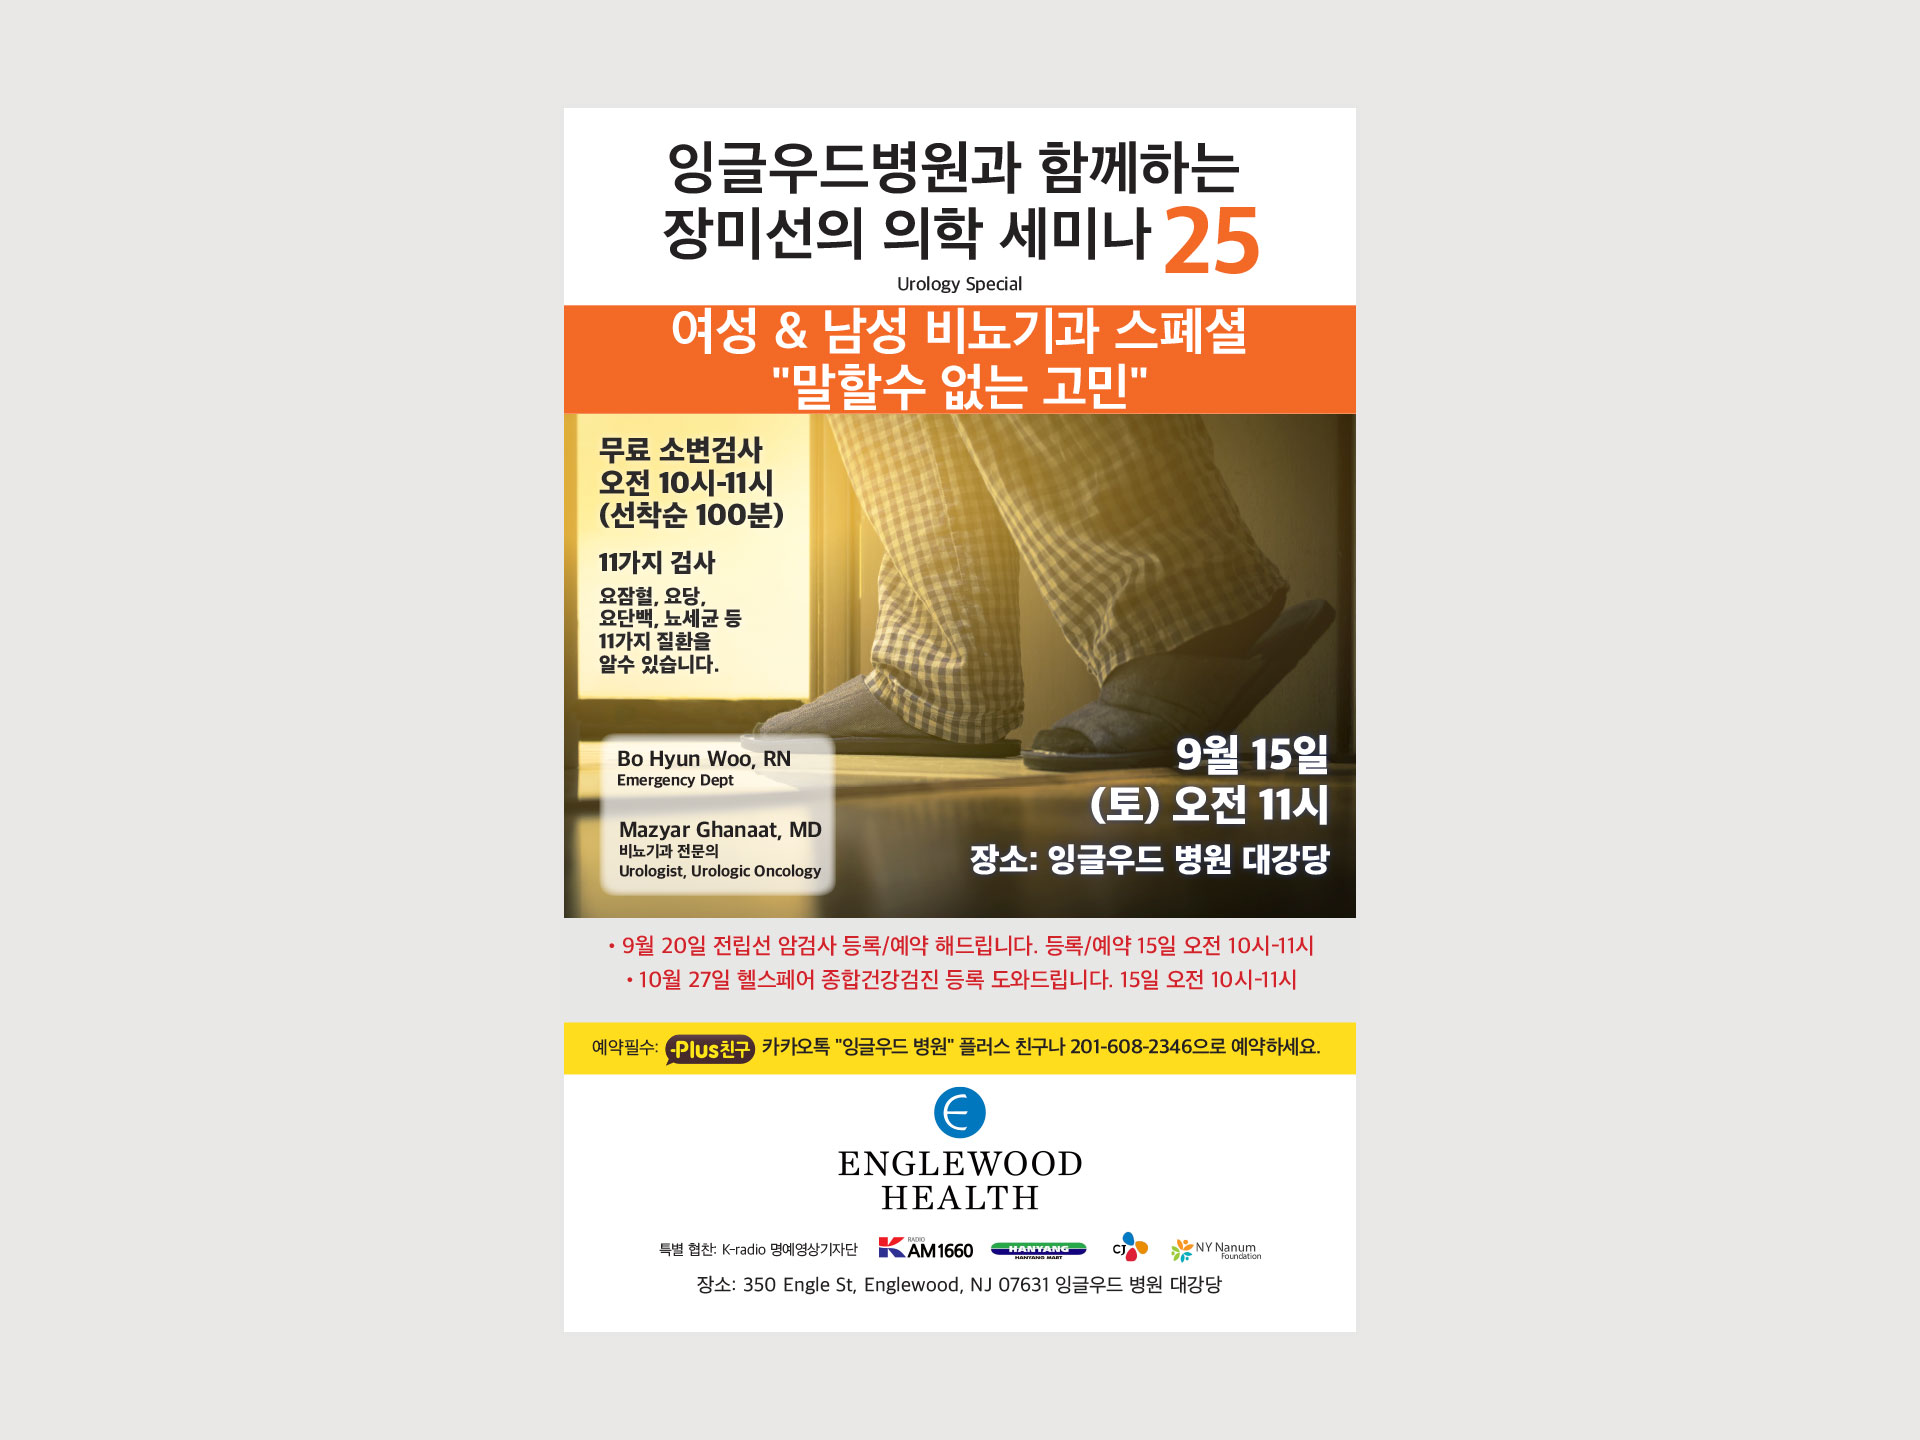 Korean Center event 25